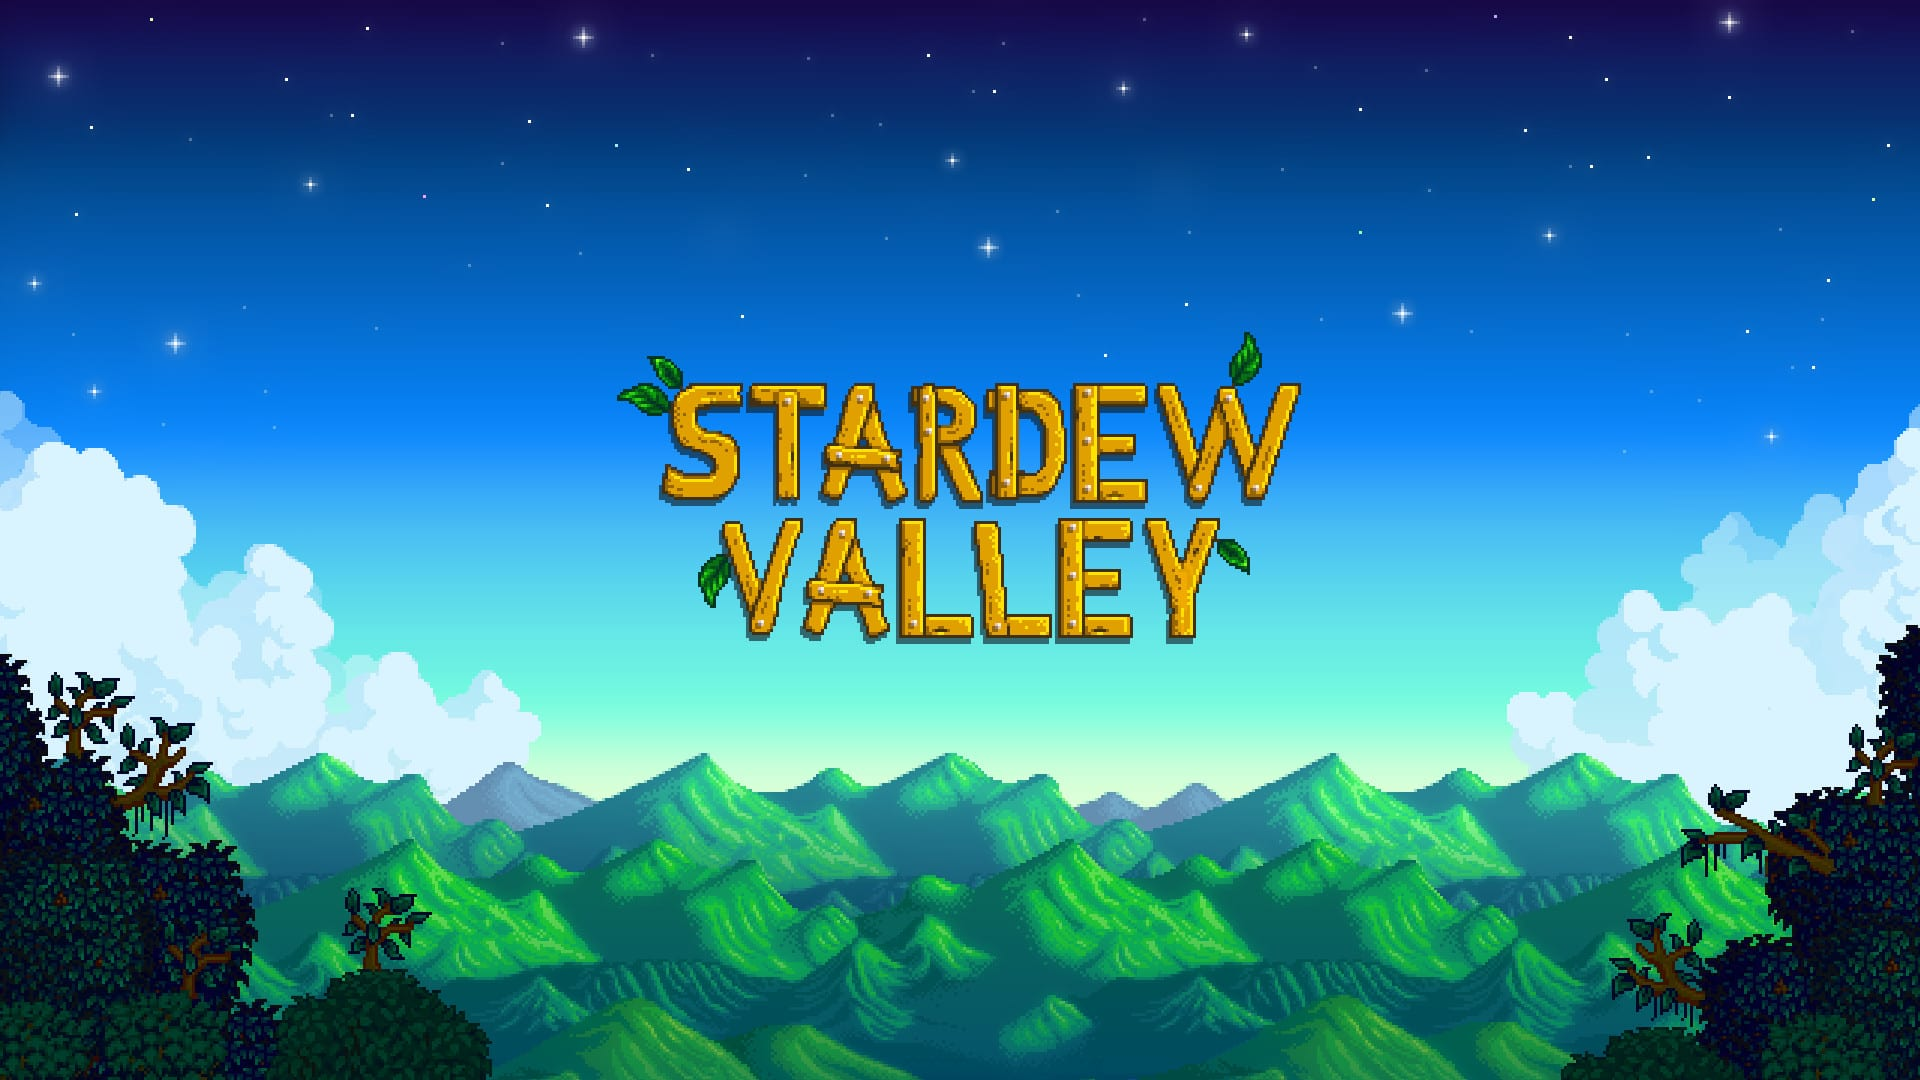 Stardew Valley comes to Nintendo Switch this Summer with multiplayer support